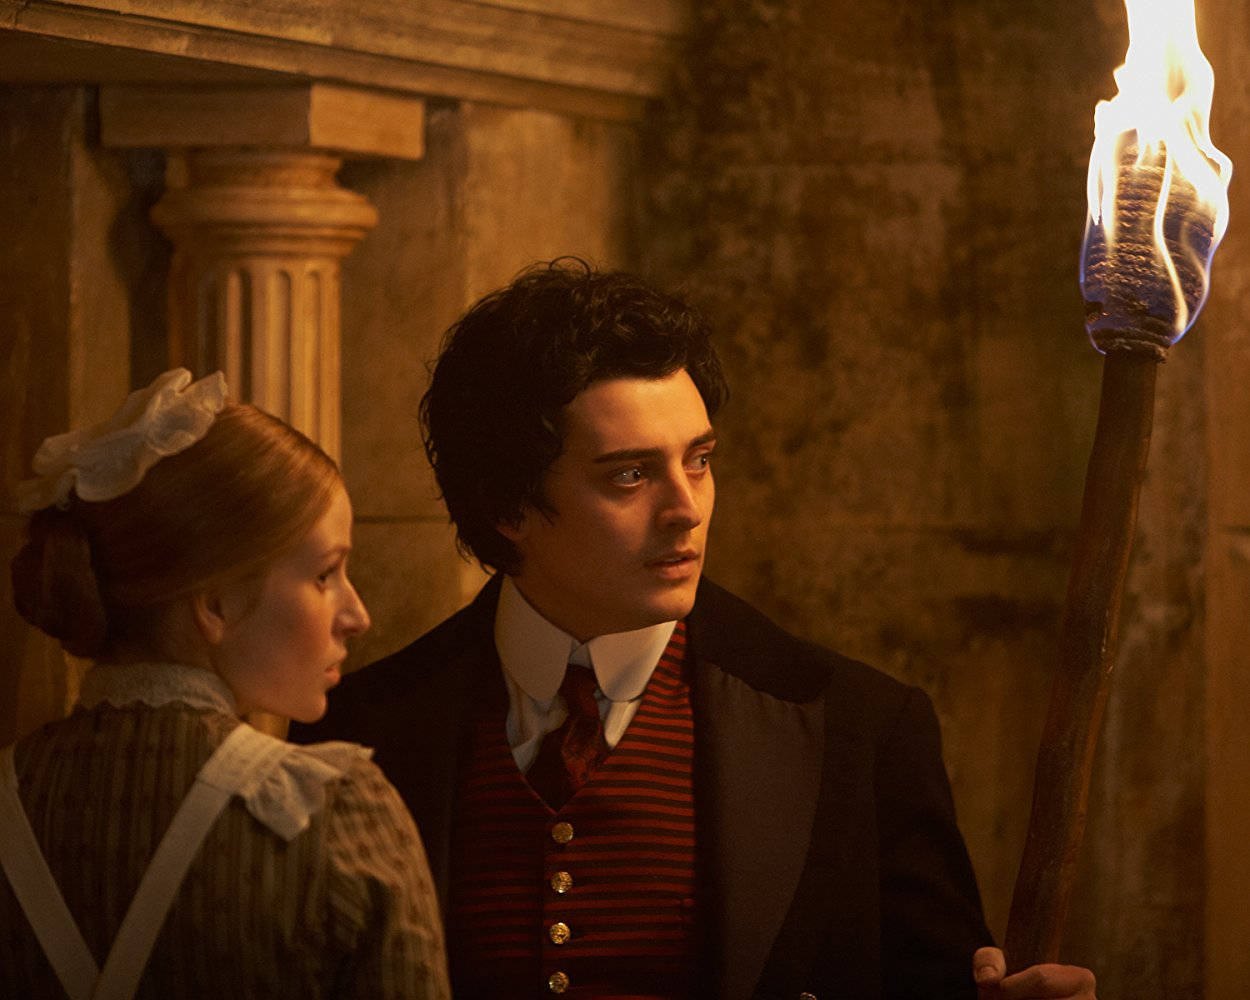 Mariah Mundi (Aneurin Barnard), along with the maid Sacha (Mella Carron), searches the secrets beneath the hotel in The Adventurer: The Curse of the Midas Box (2014)